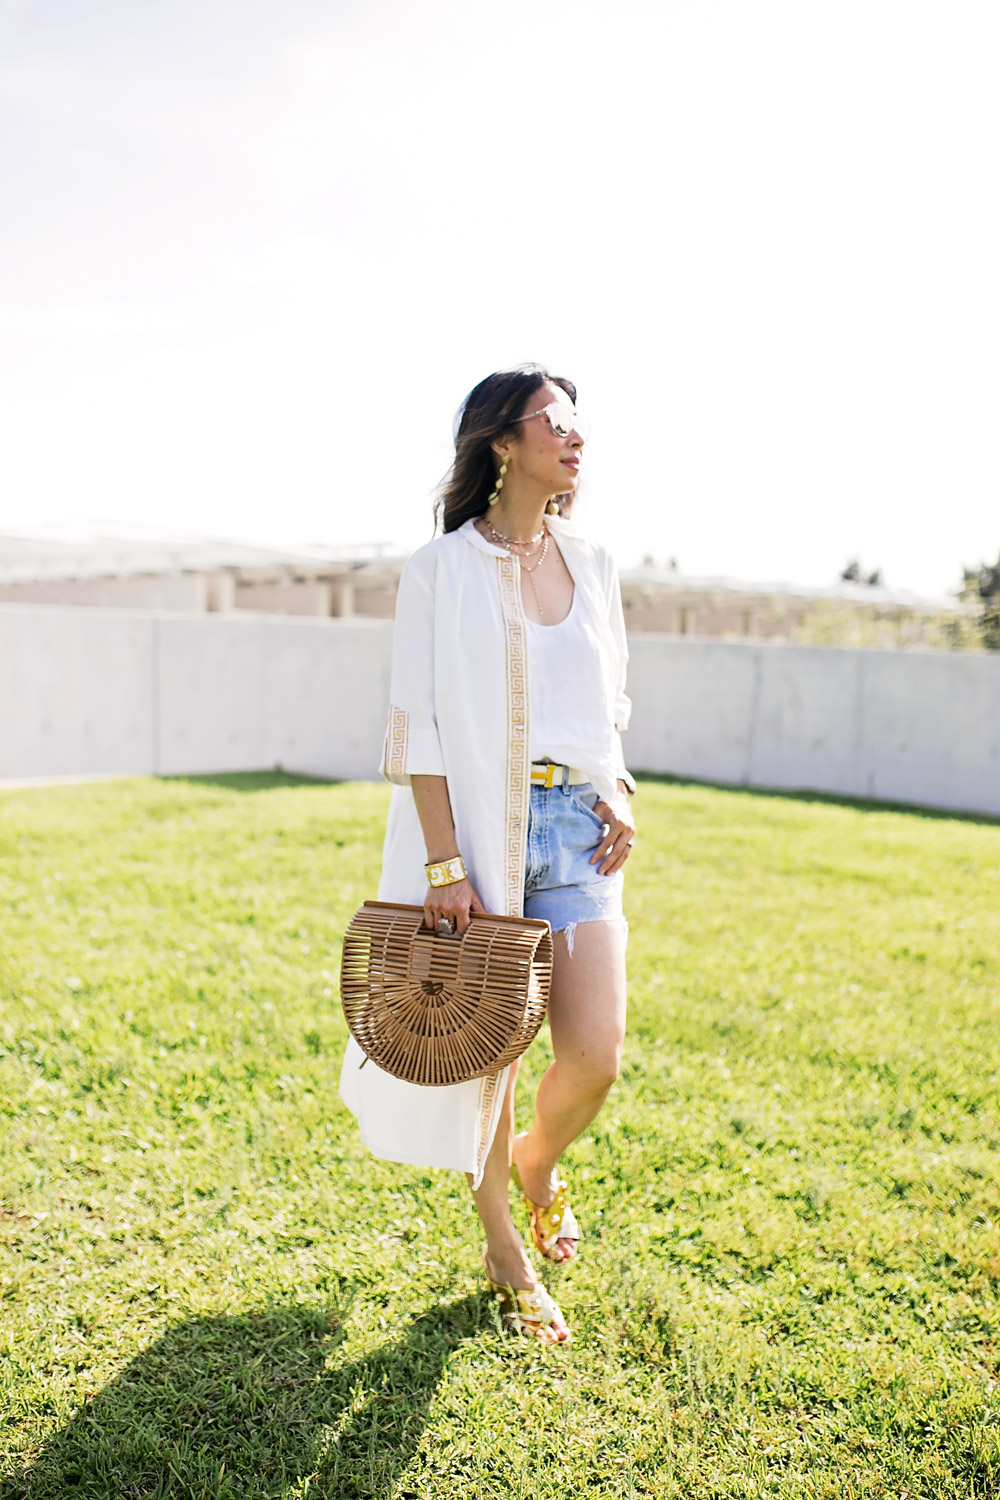 greek key coverup bamboo arc bag vintage levi's denim shorts baublebar gold crispin drop earrings